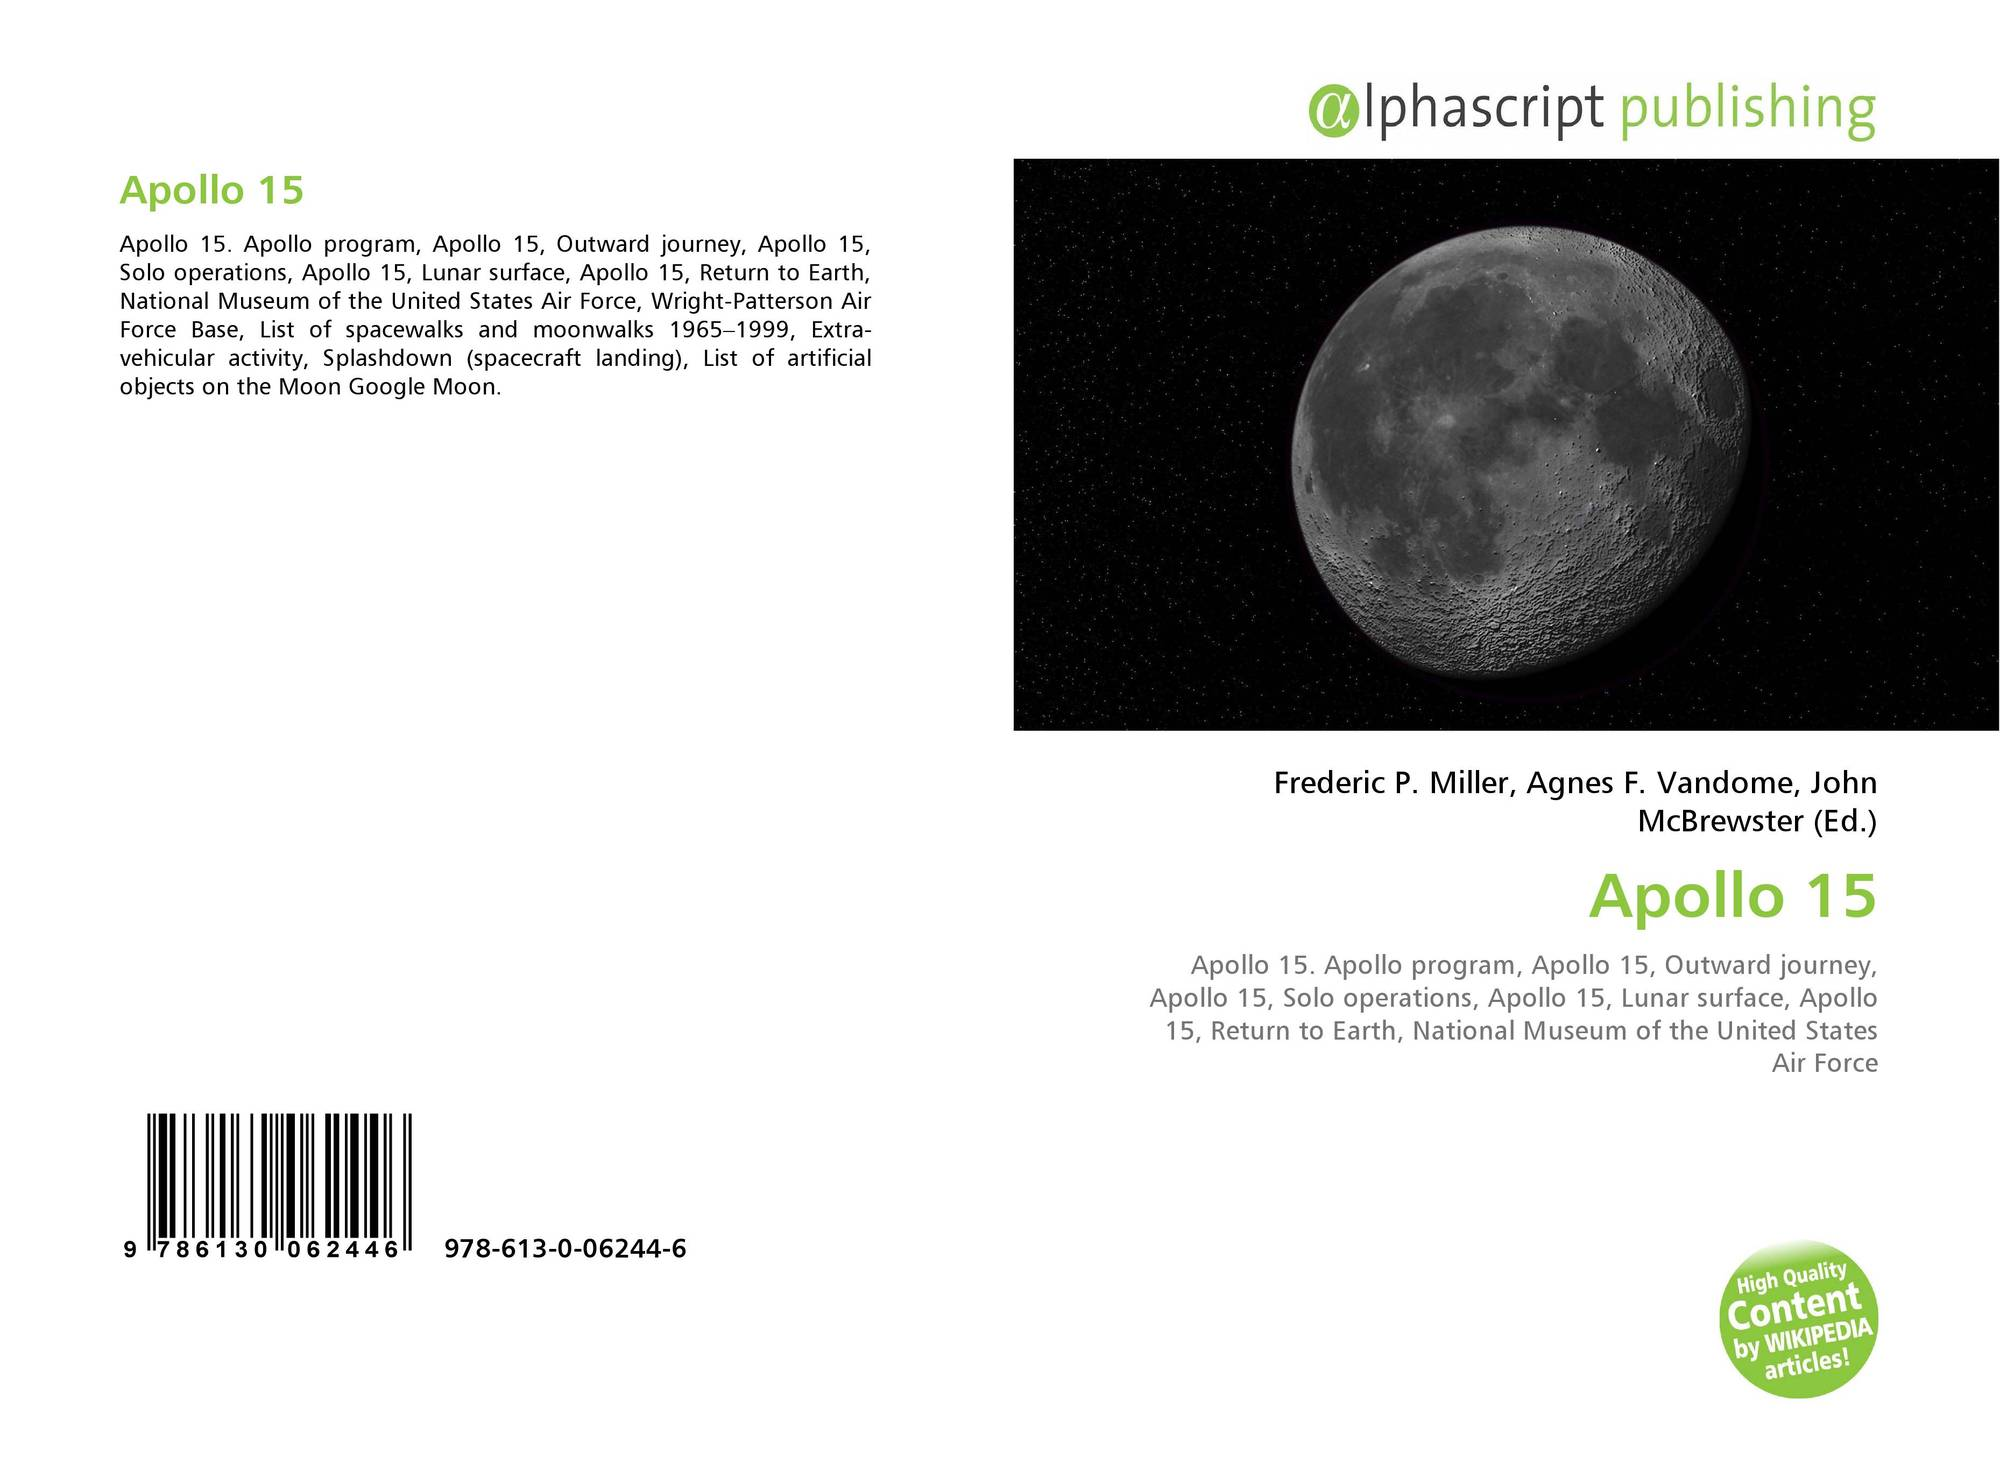 List of artificial objects on the Moon